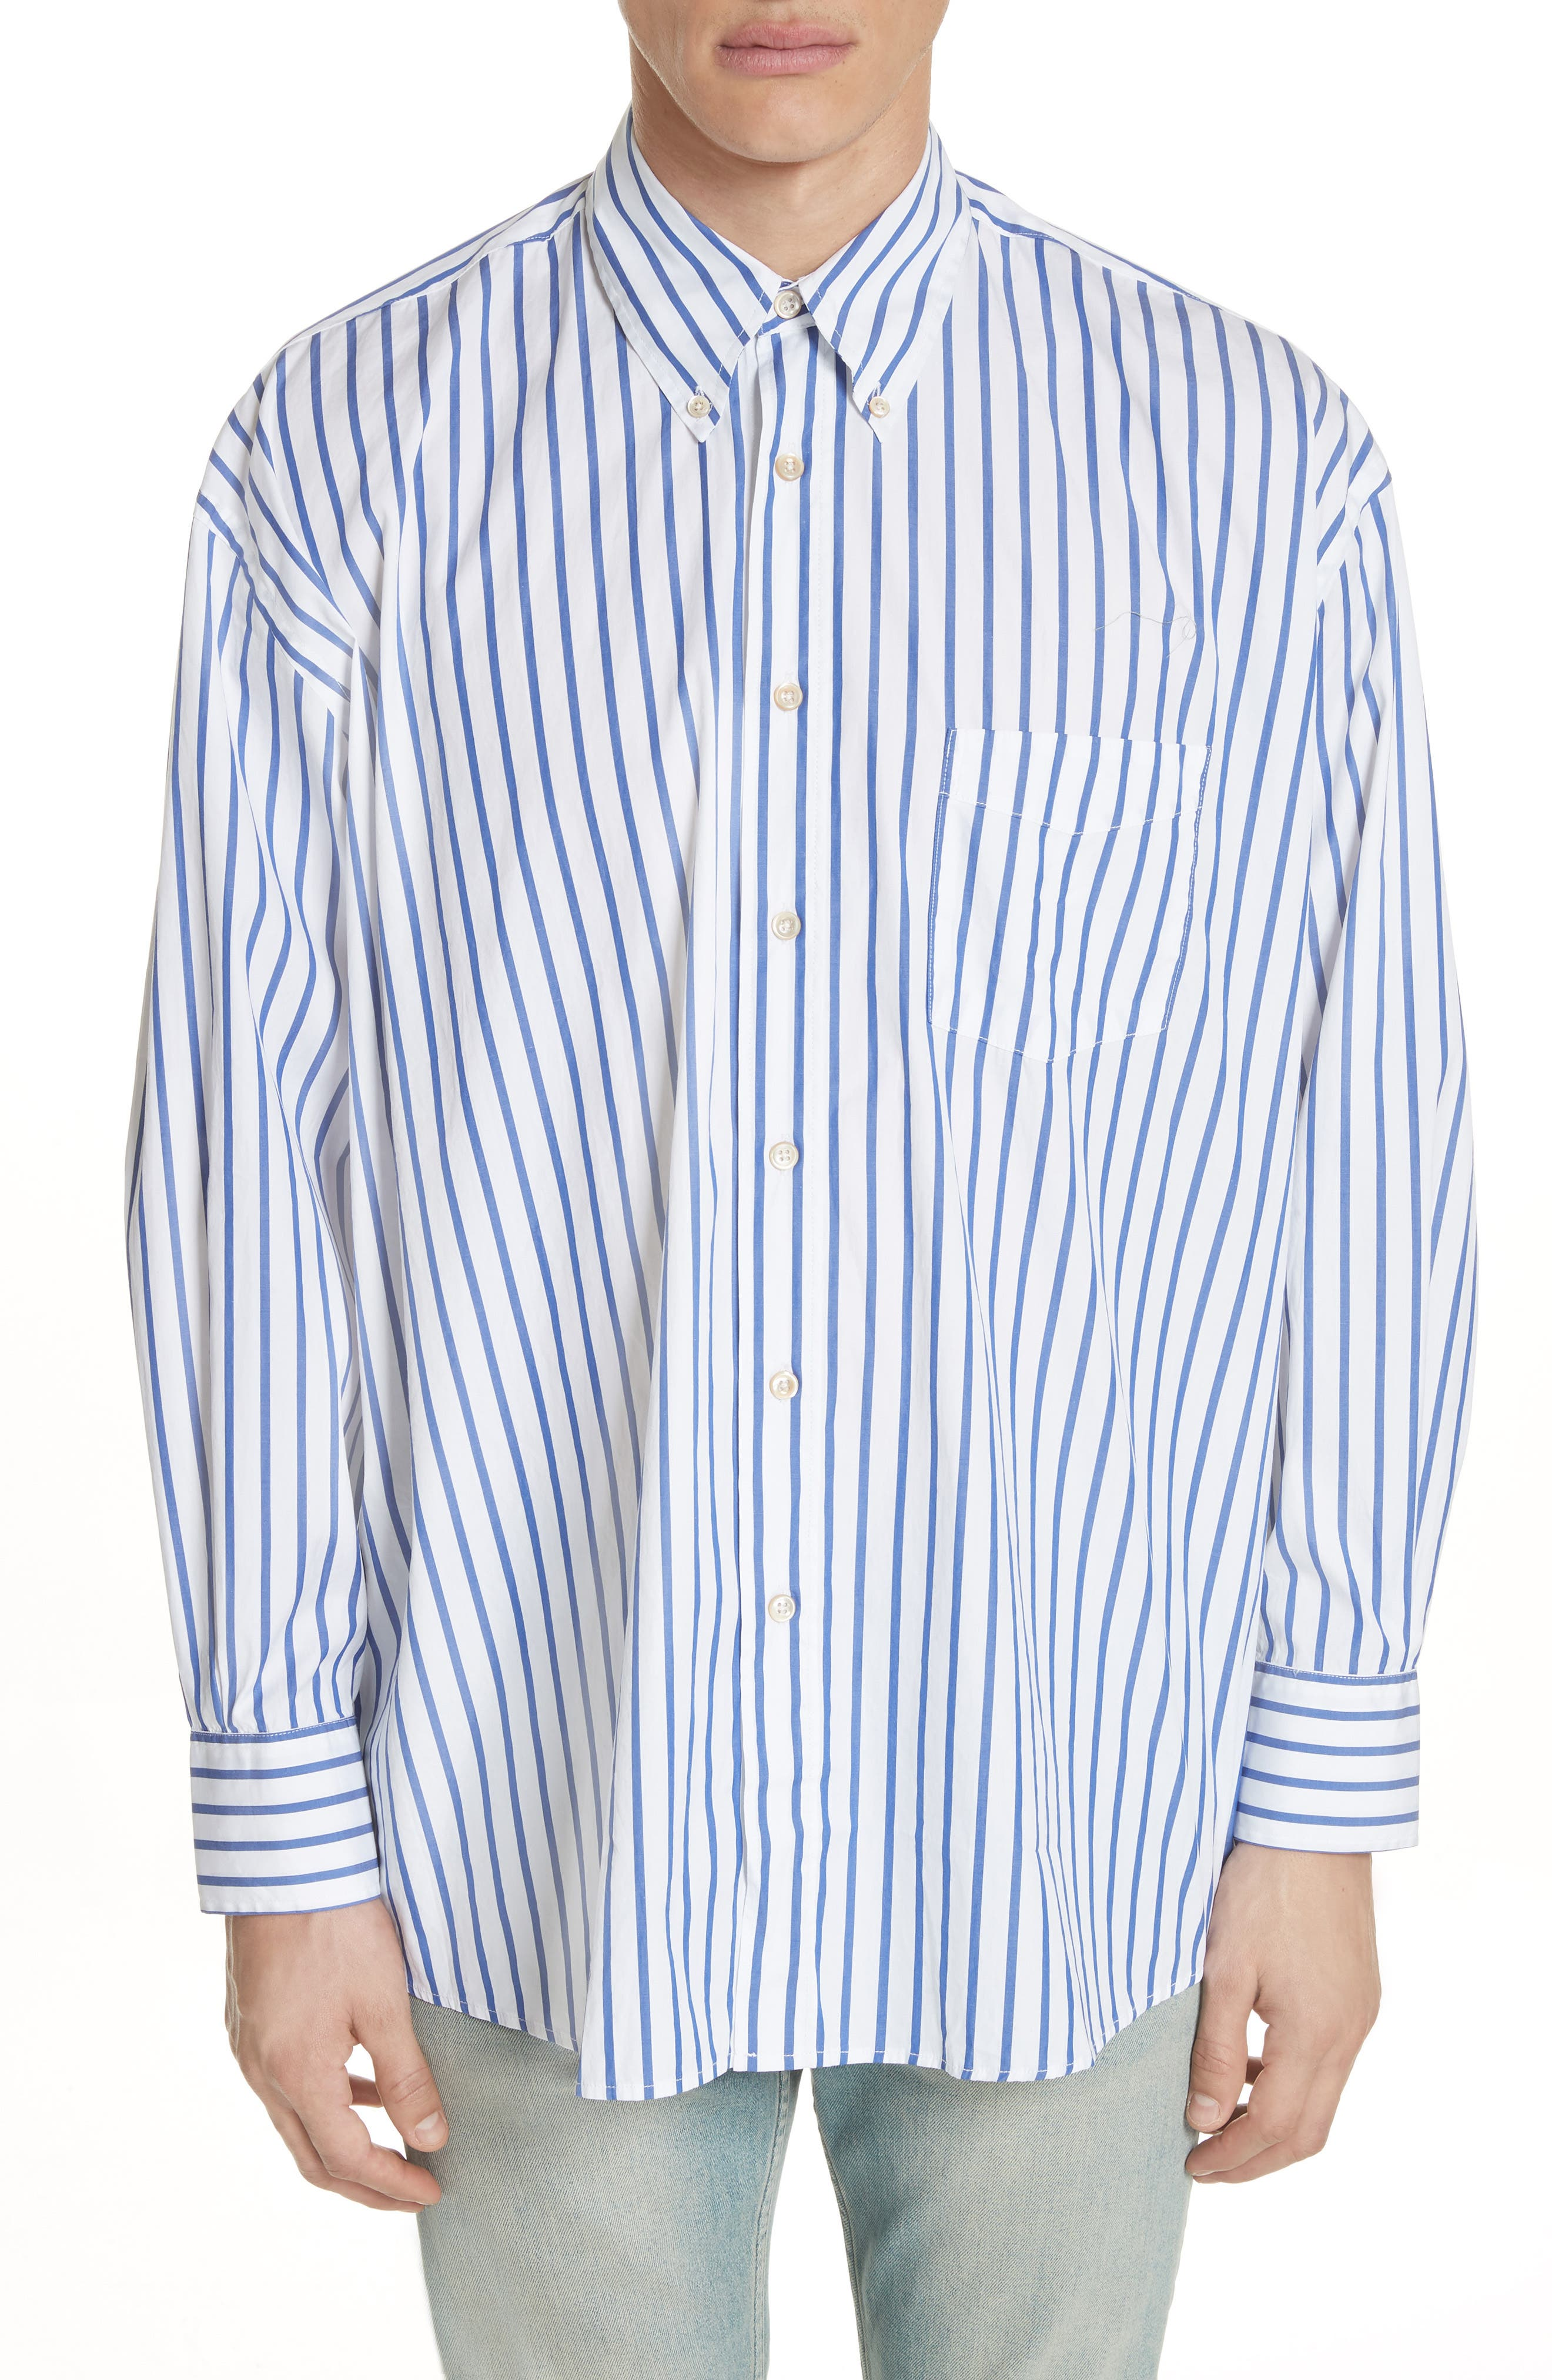 Main Image - OUR LEGACY Oversize Stripe Woven Shirt